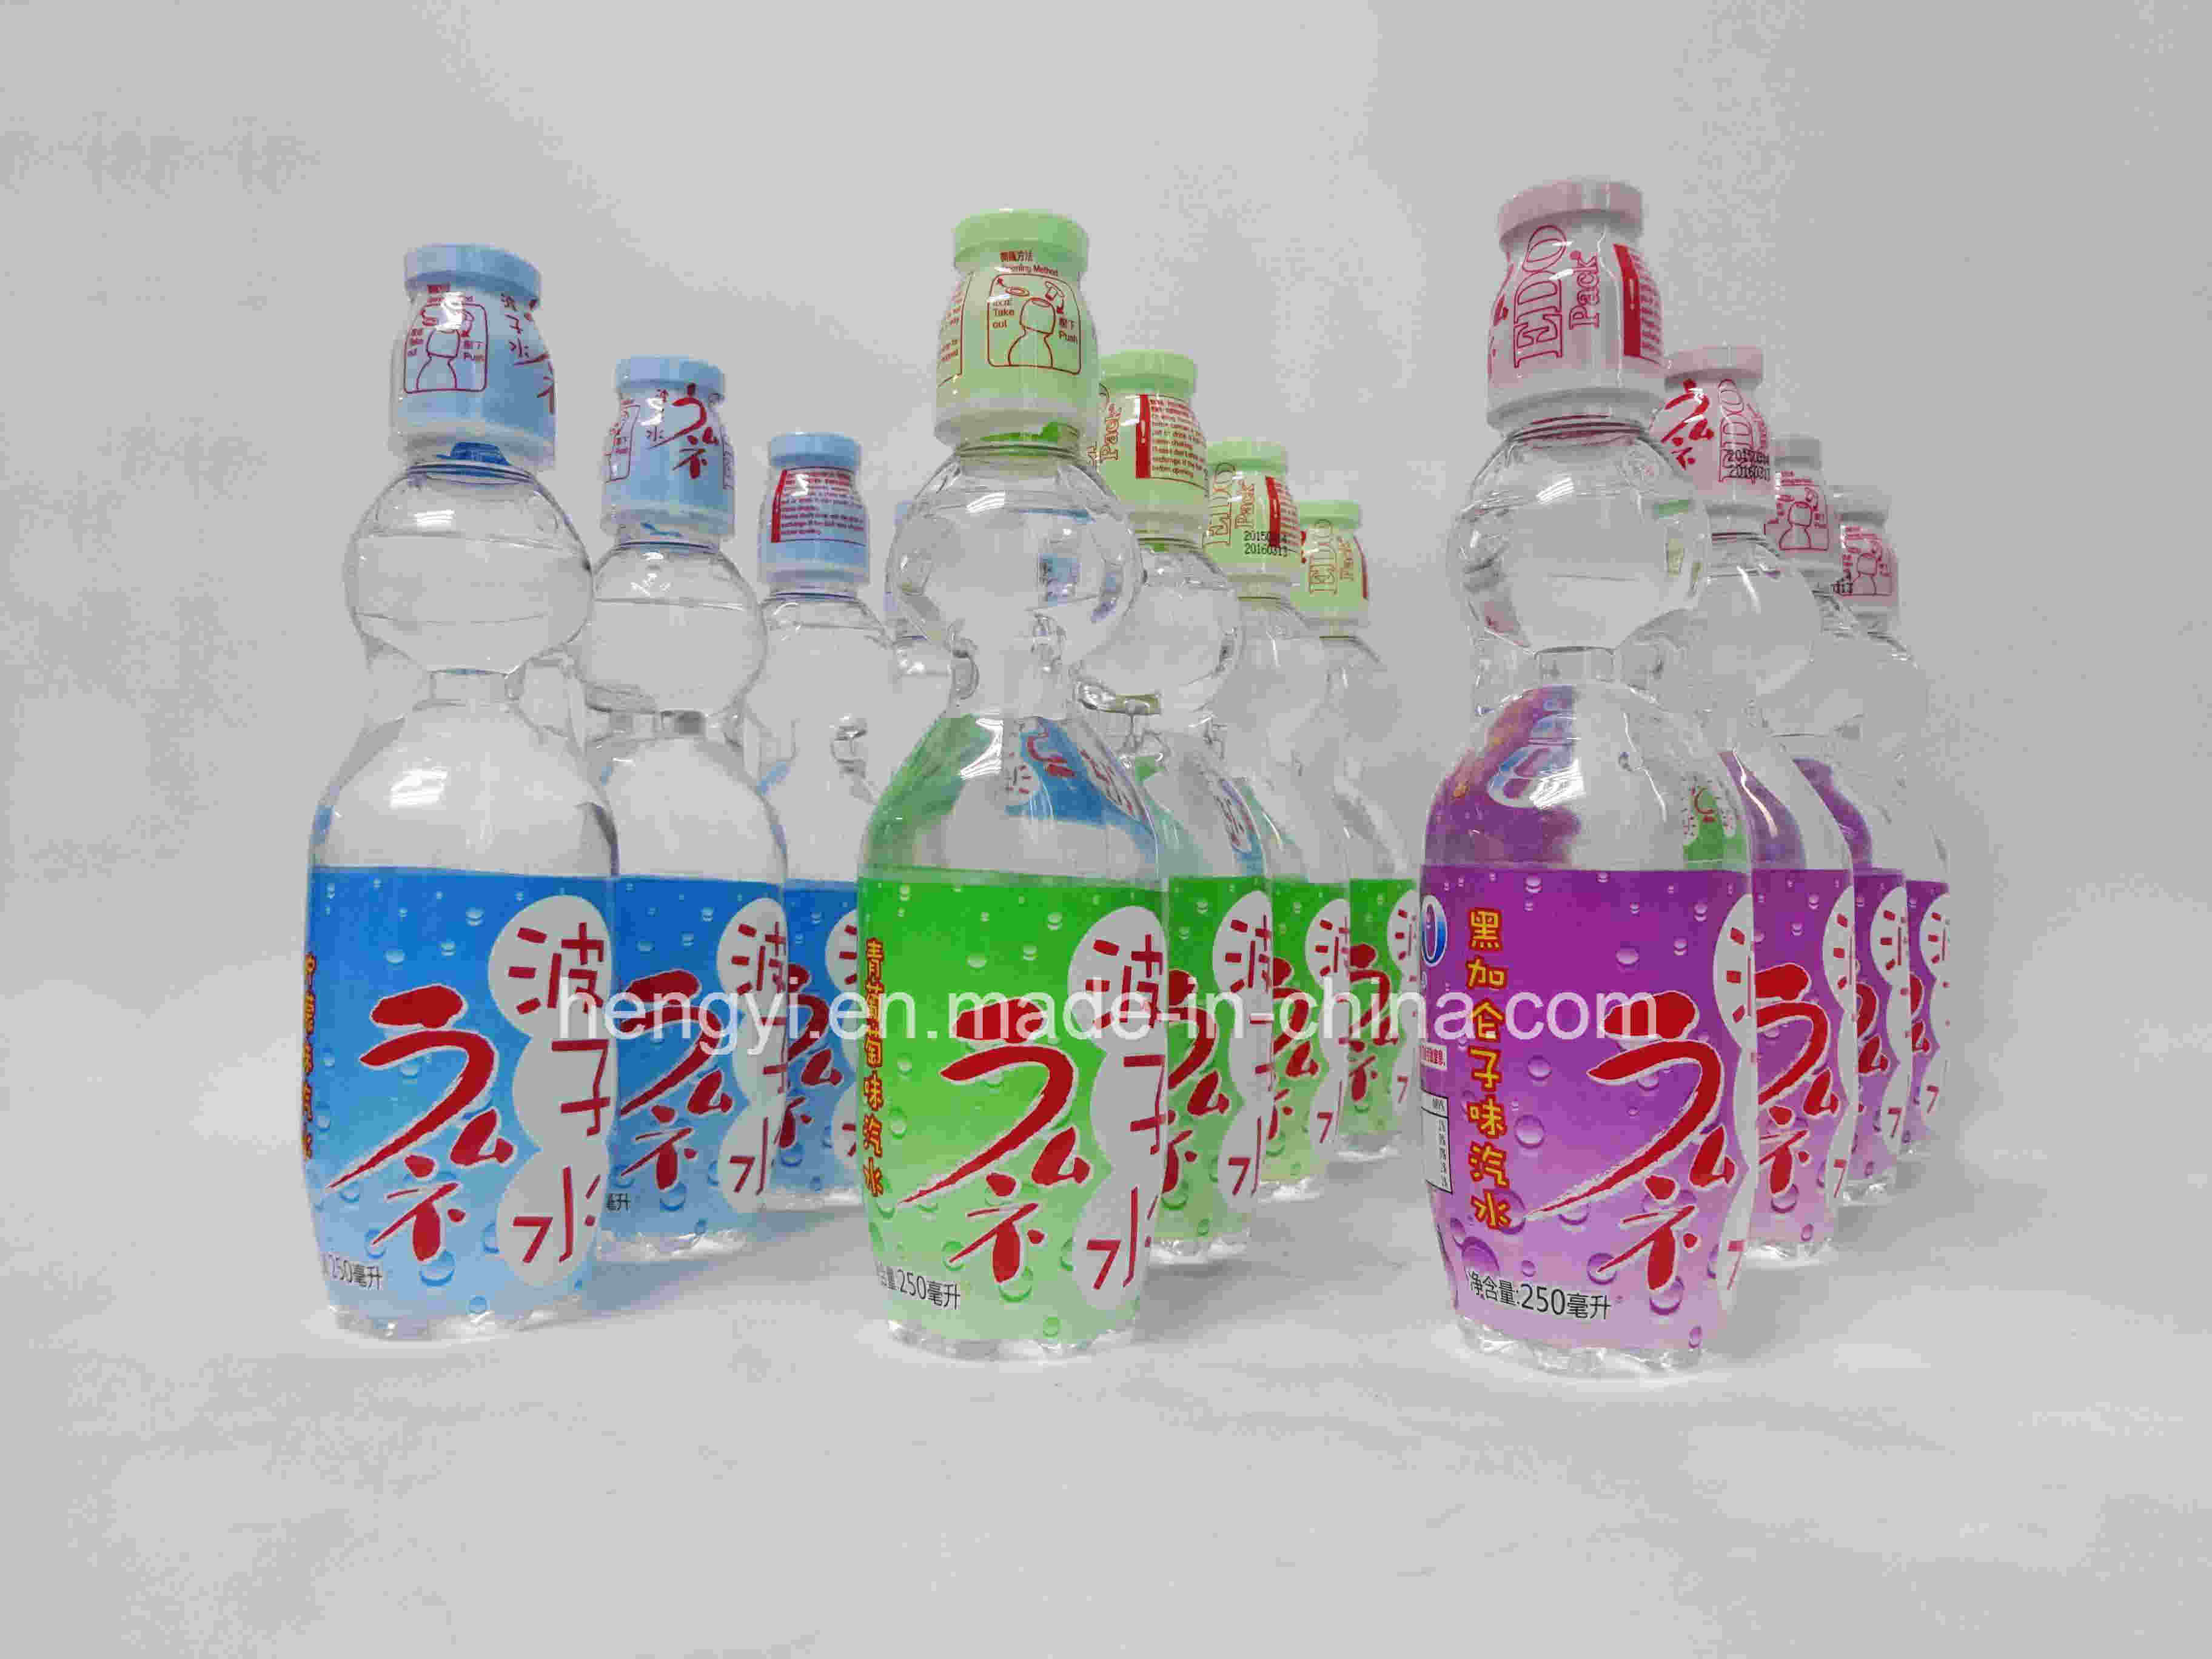 China water bottle label printing water bottle label printing manufacturers suppliers price made in china com